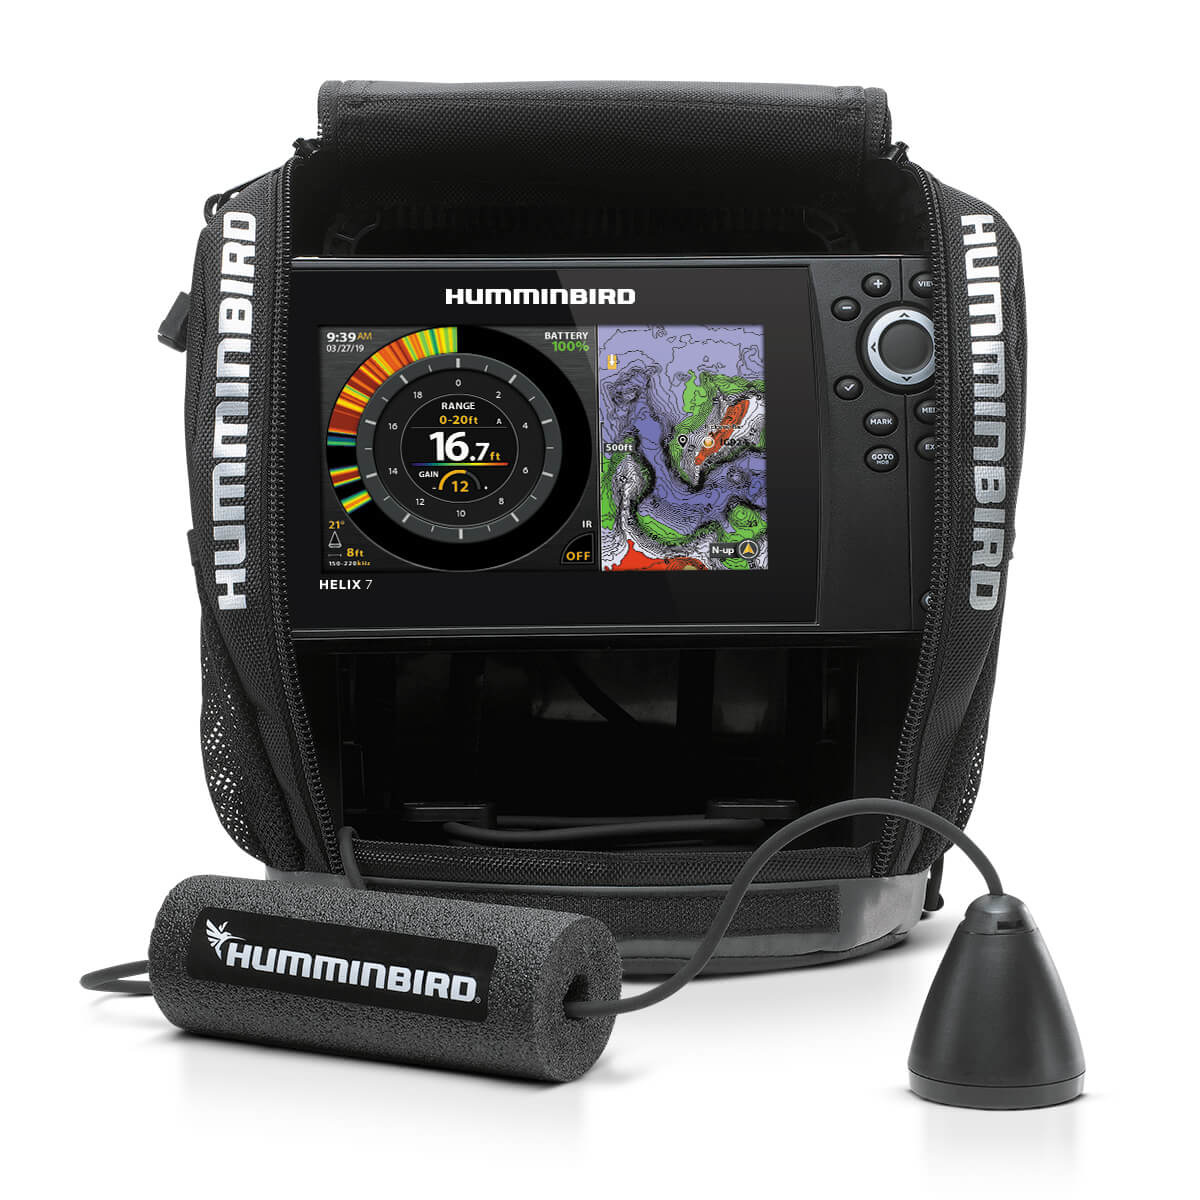 Humminbird Ice Helix 7 Chirp GPS G3